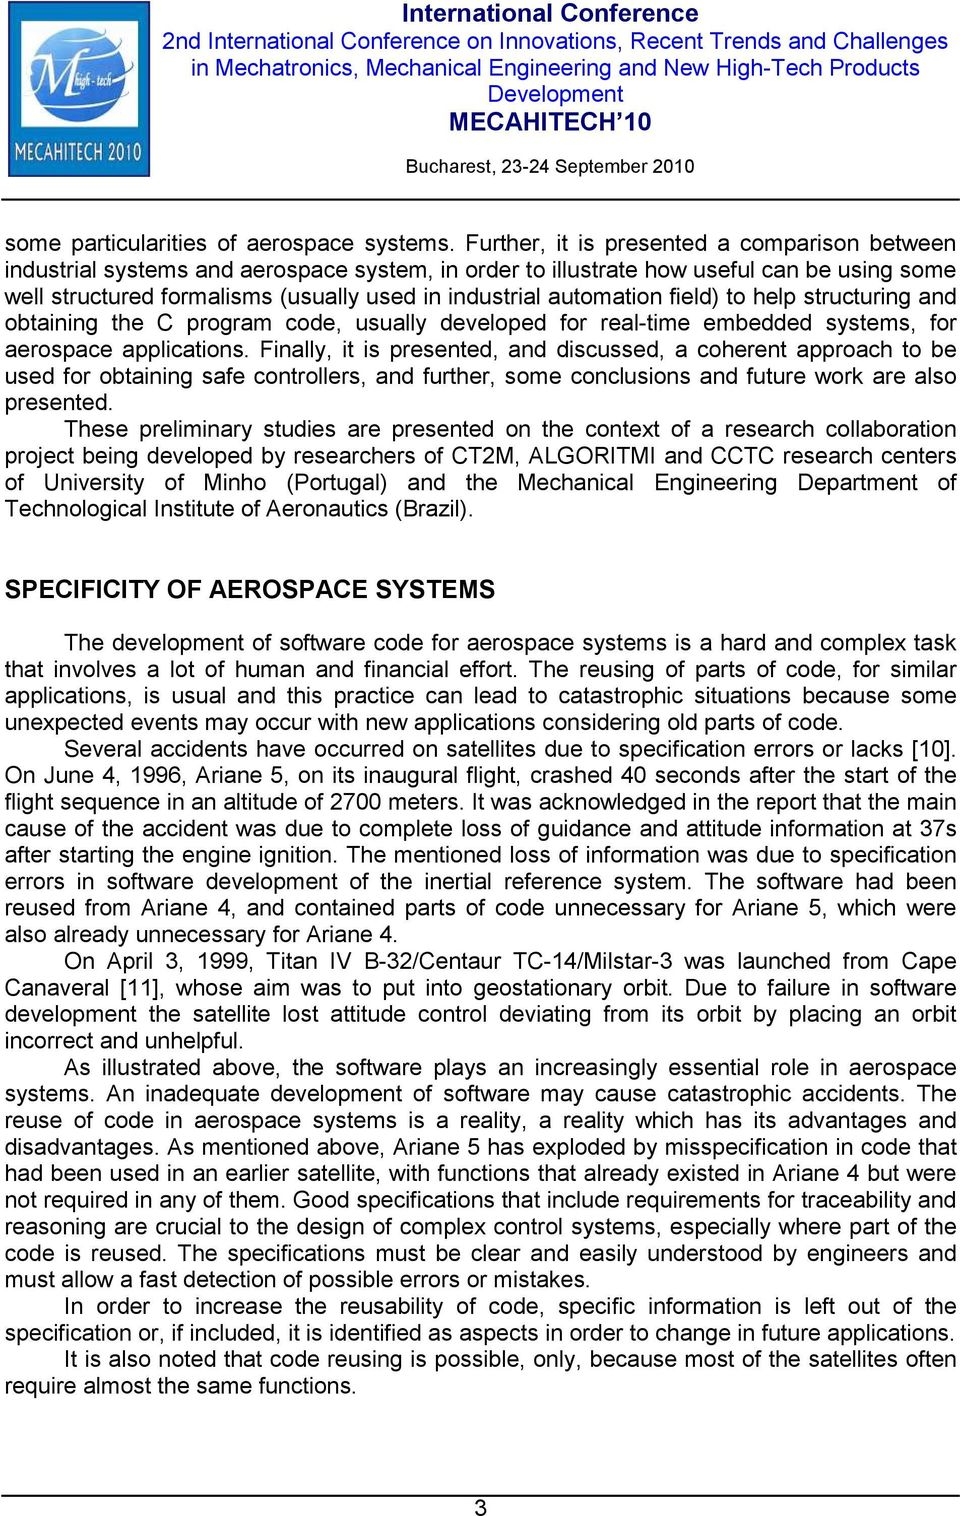 automation field) to help structuring and obtaining the C program code, usually developed for real-time embedded systems, for aerospace applications.